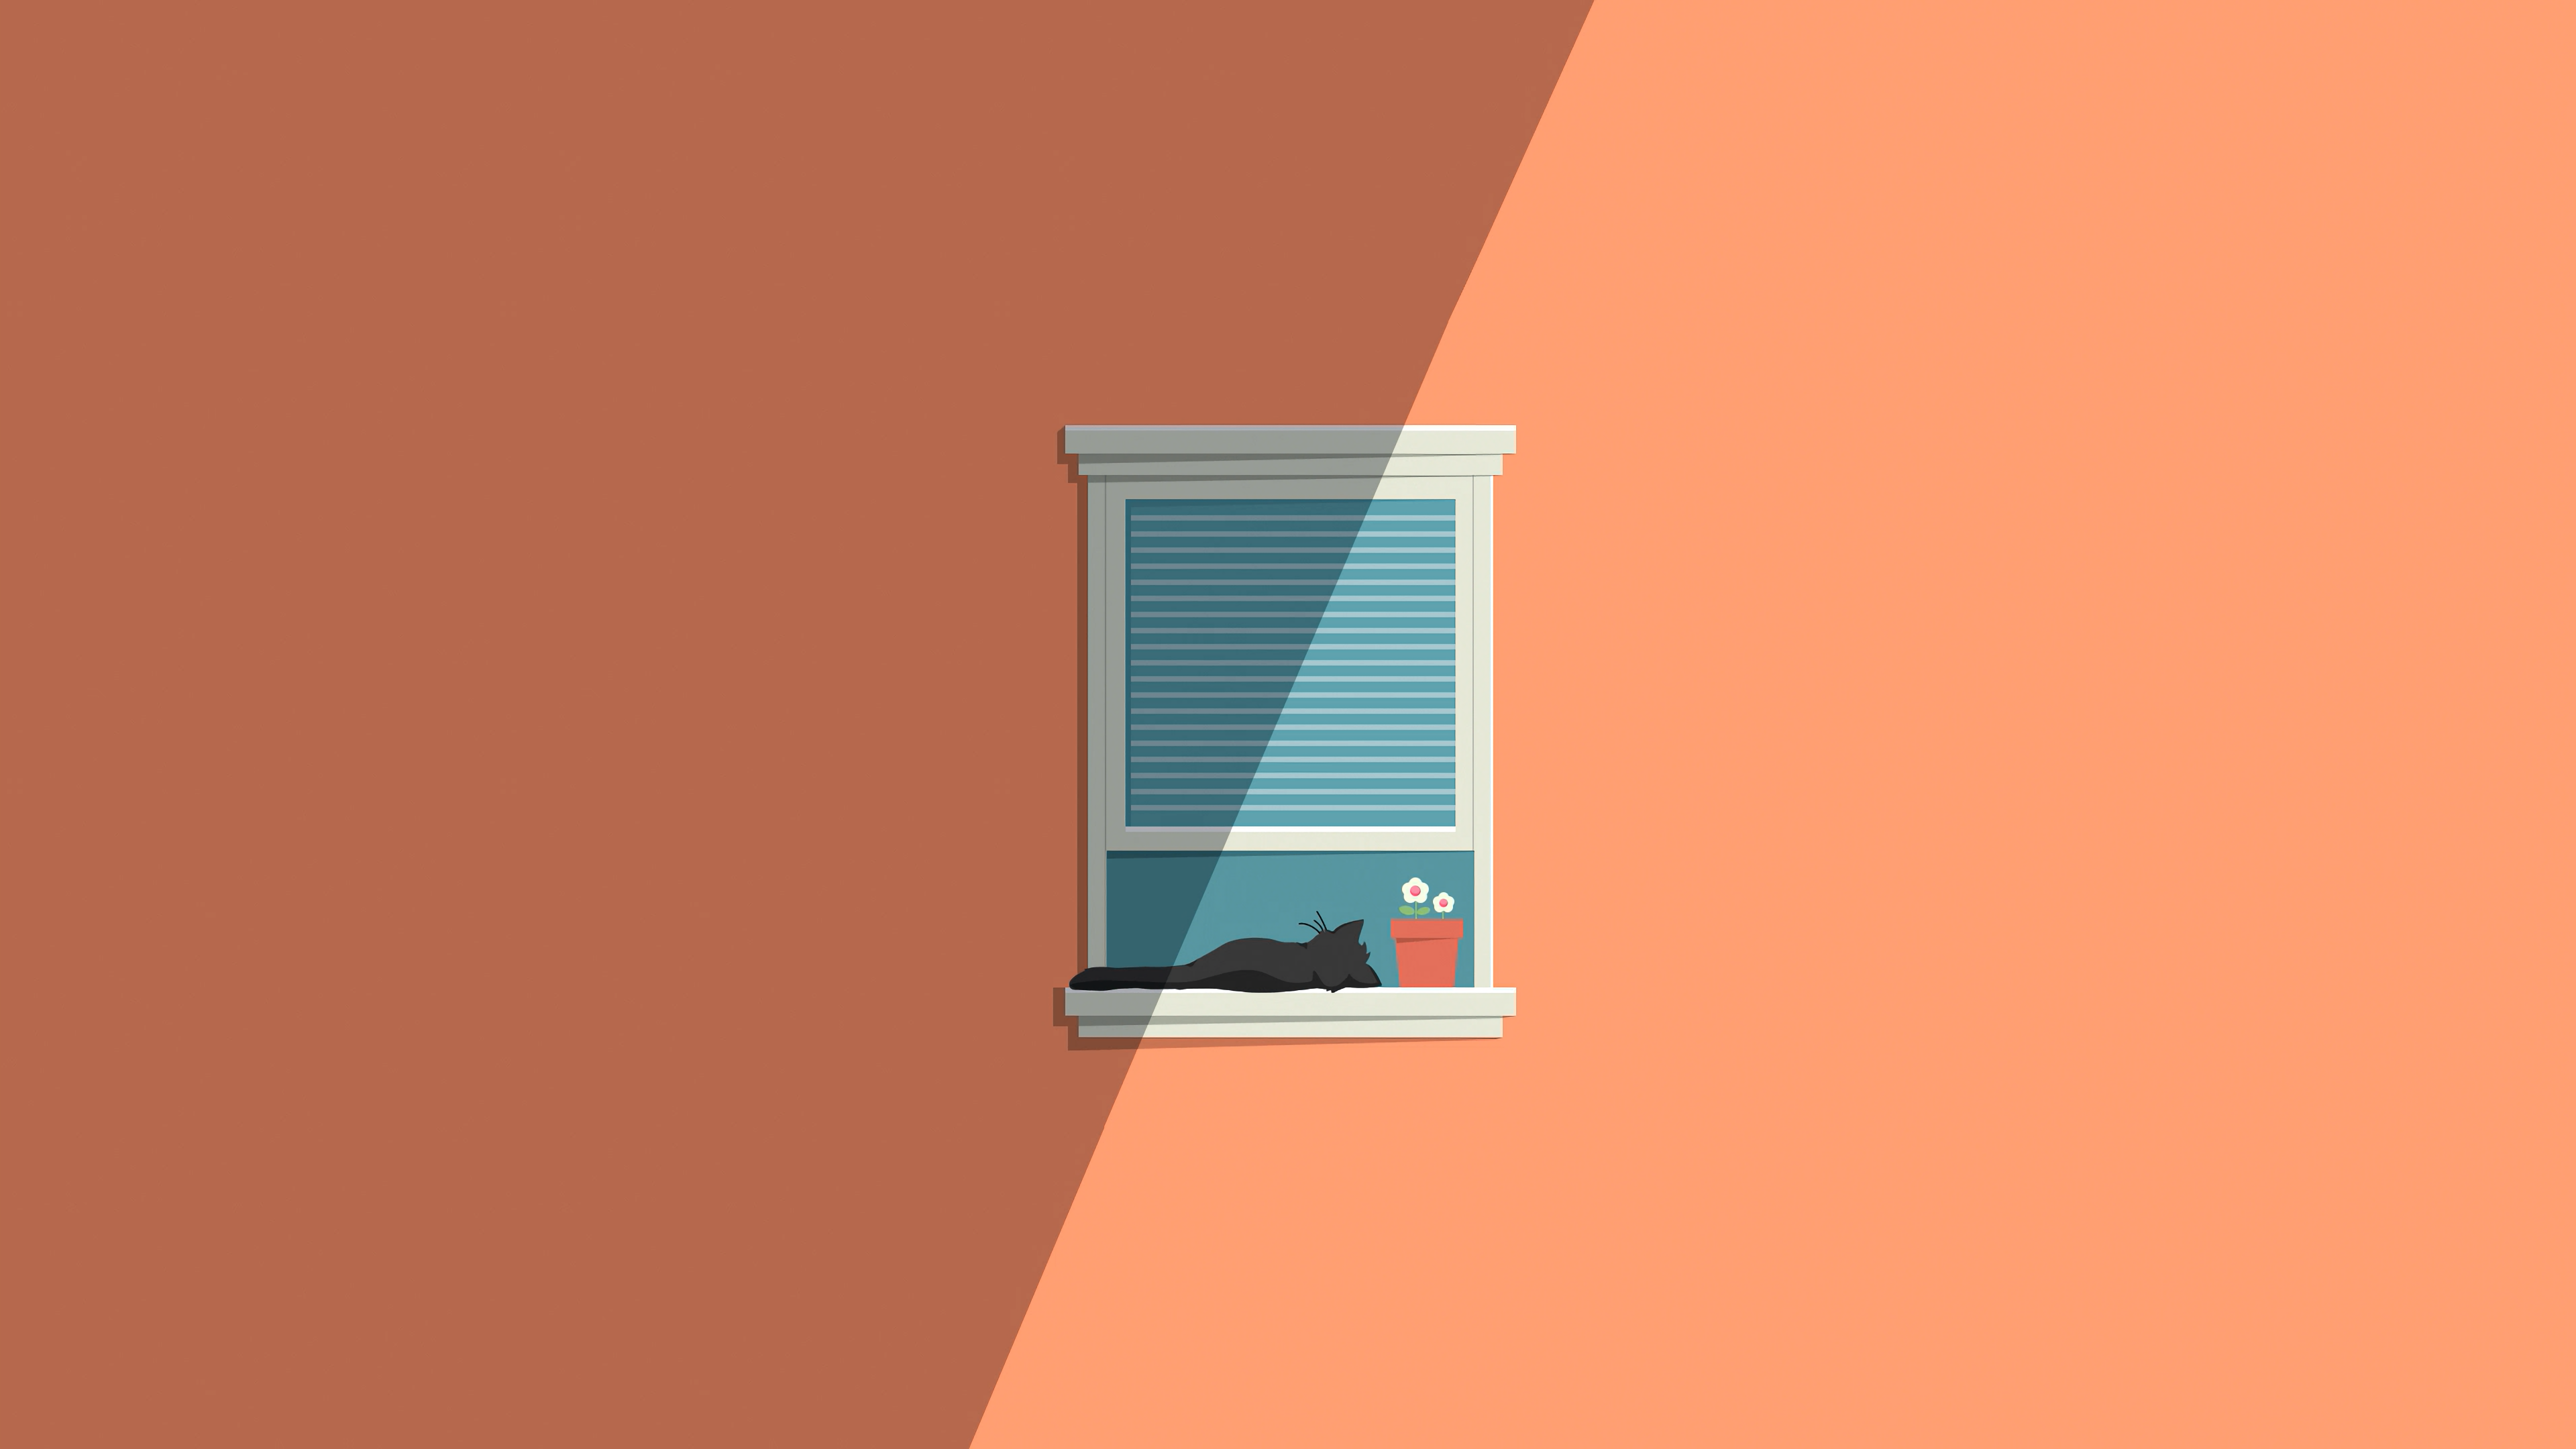 General 3840x2160 simple minimalism simple background cats window sill